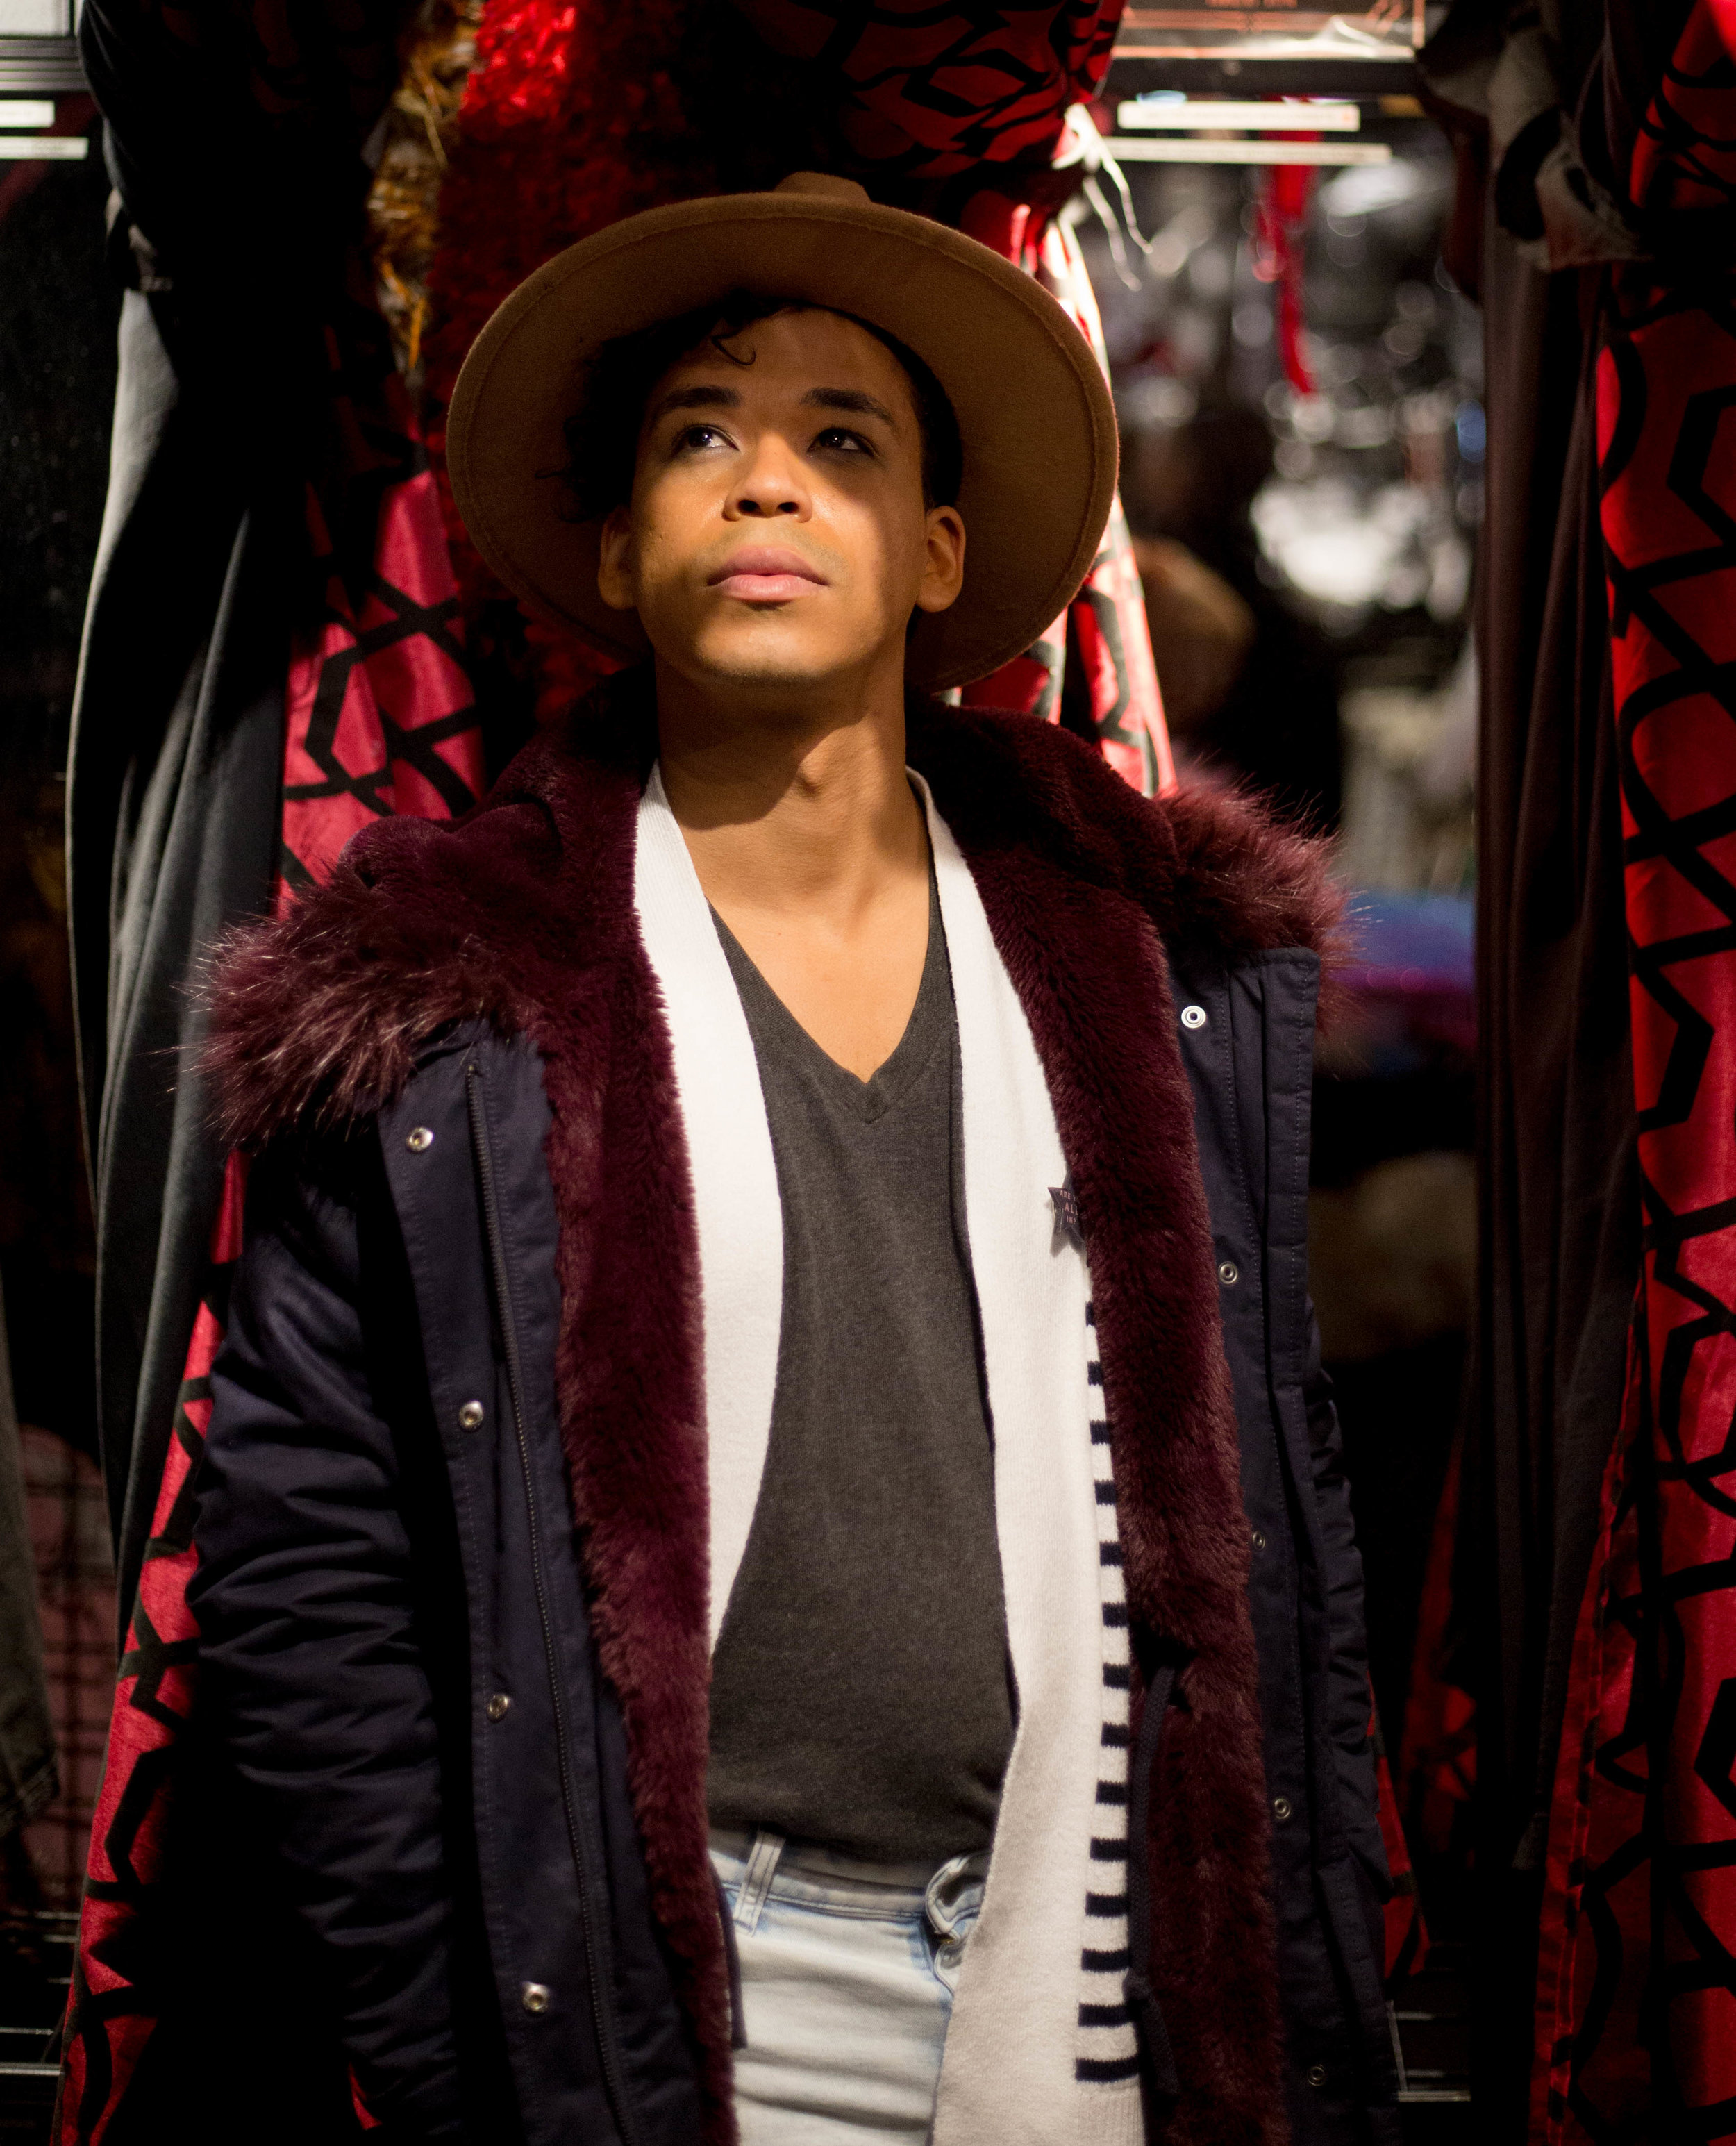 Roy Guia shops looks at new outfits for his upcoming drag queen show. Goth Renaissance is New York's premier one stop shop for all goth and showtime needs. In New York on Saturday, March 31, 2019. (Wes Parnell for EST)